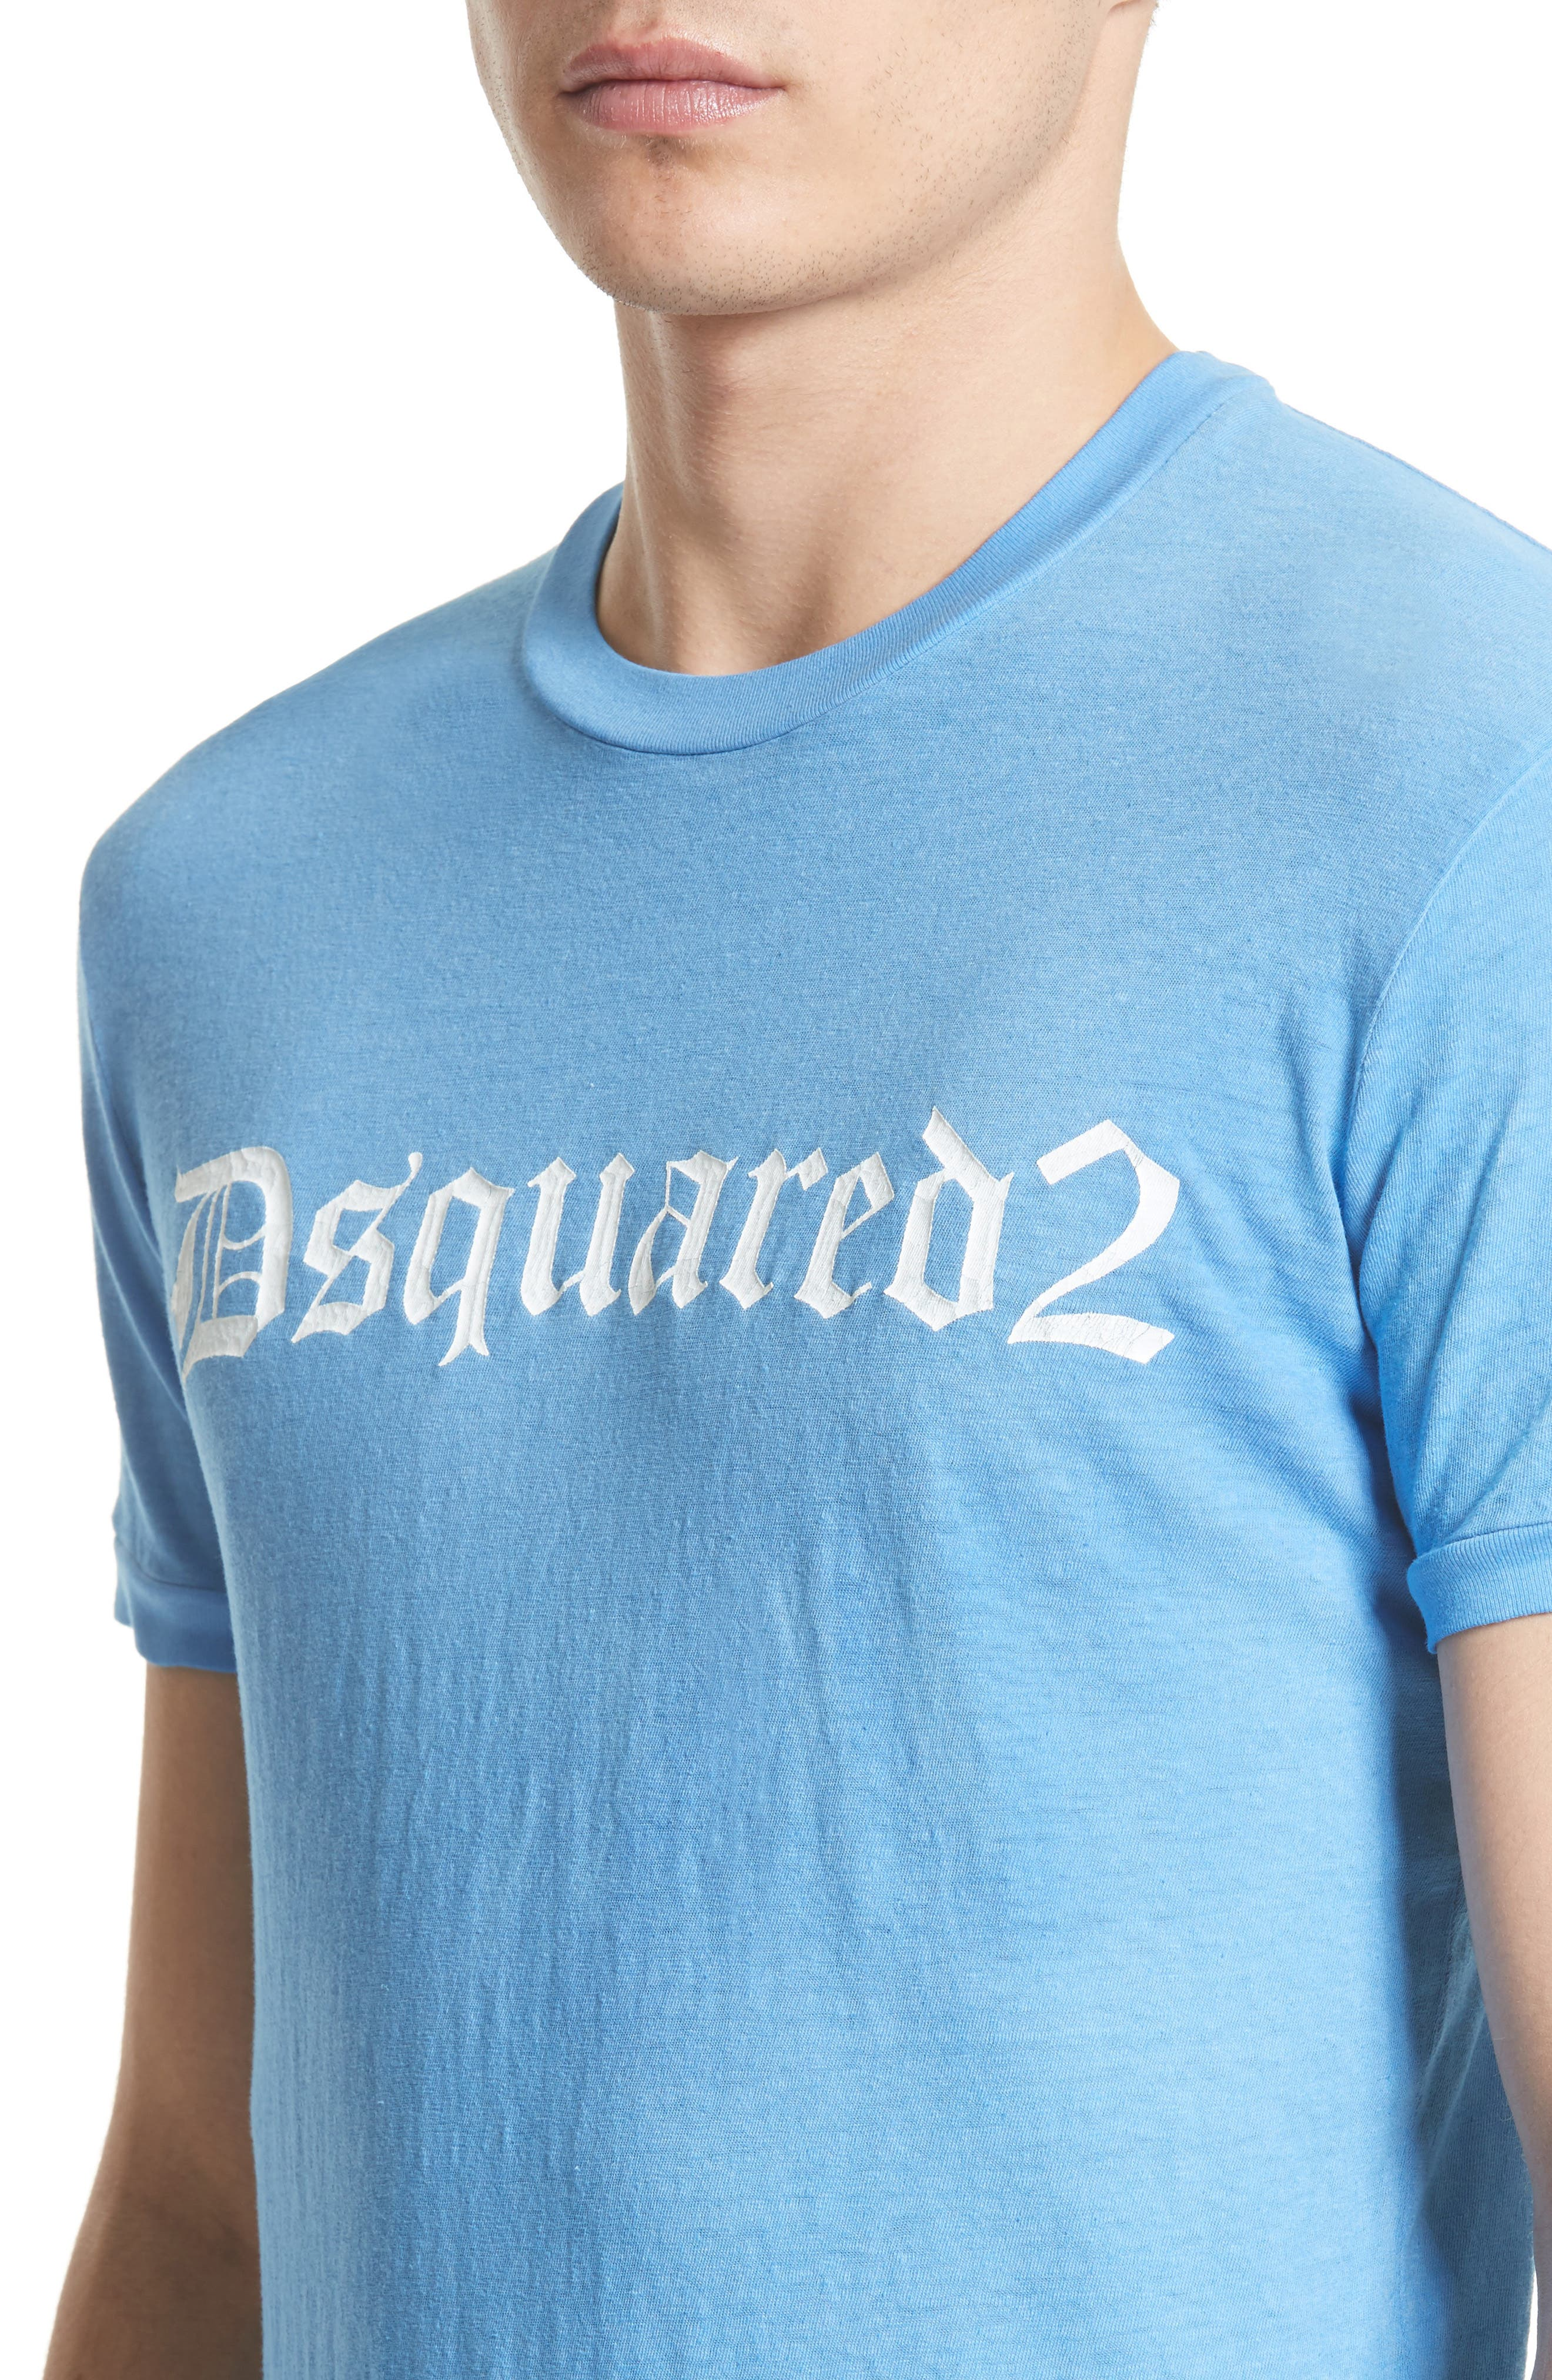 Alternate Image 4  - Dquared2 Cotton T-Shirt